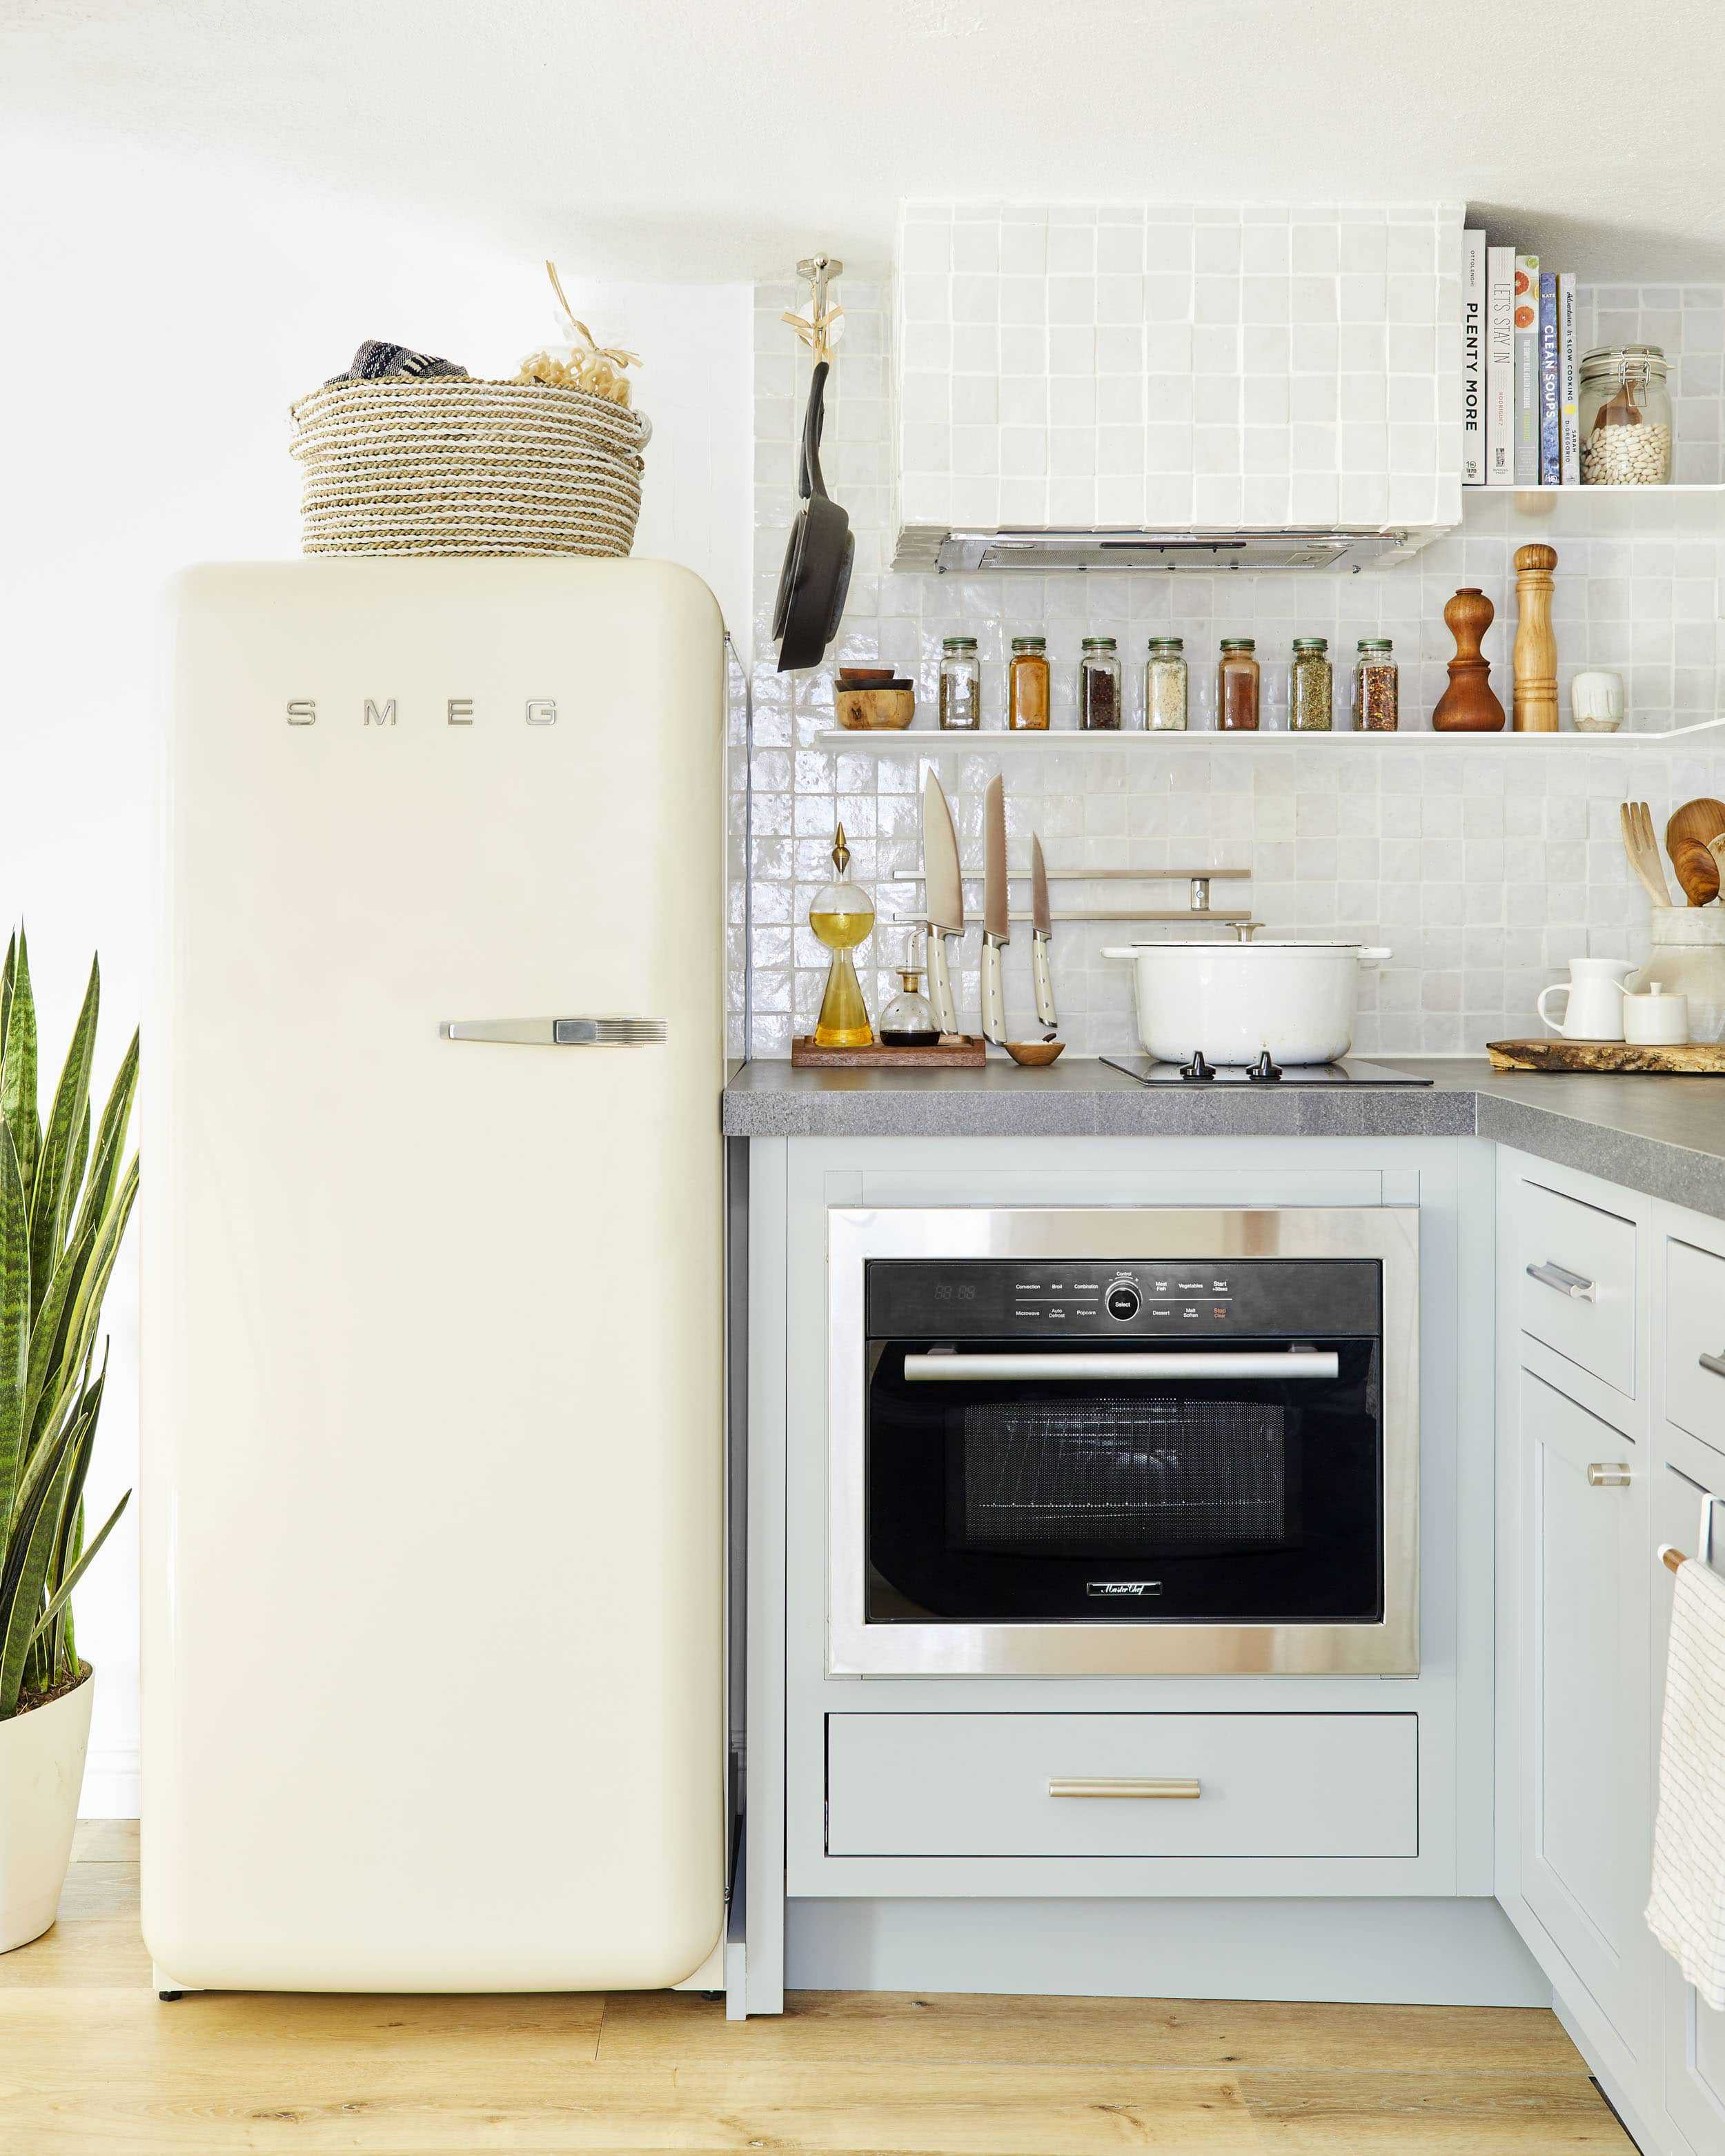 Design A 49 Square Foot Tiny Kitchen